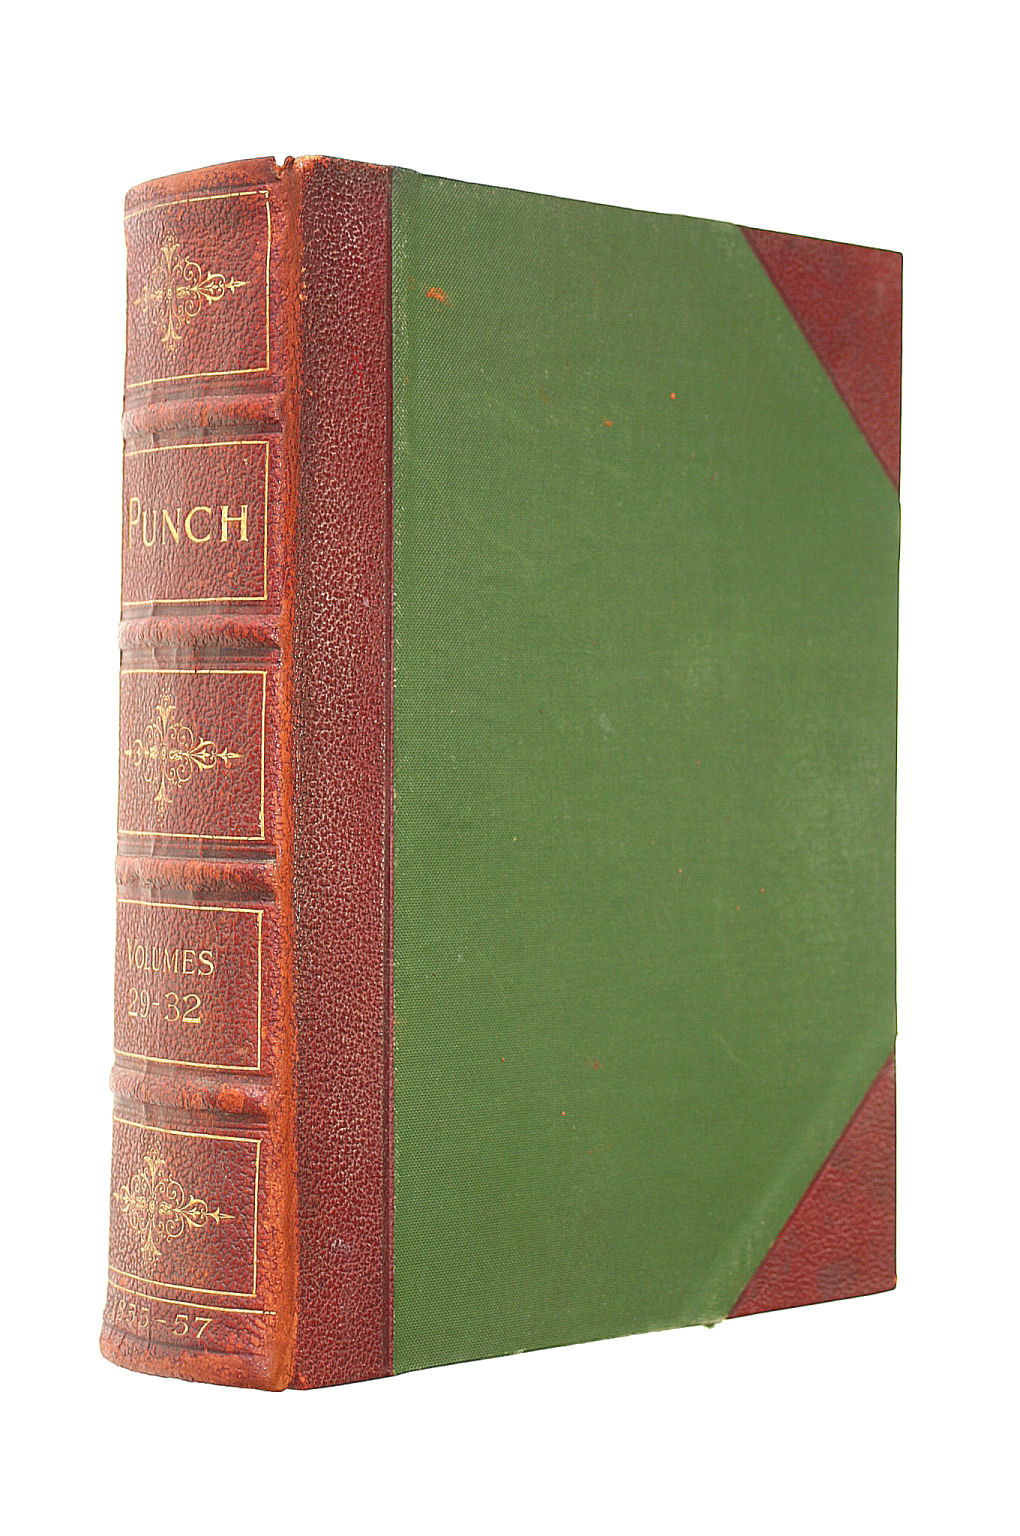 Image for Punch, Or The London Charivari, Volumes 29-32, July 1855 To June 1857, [In 1 Volume]